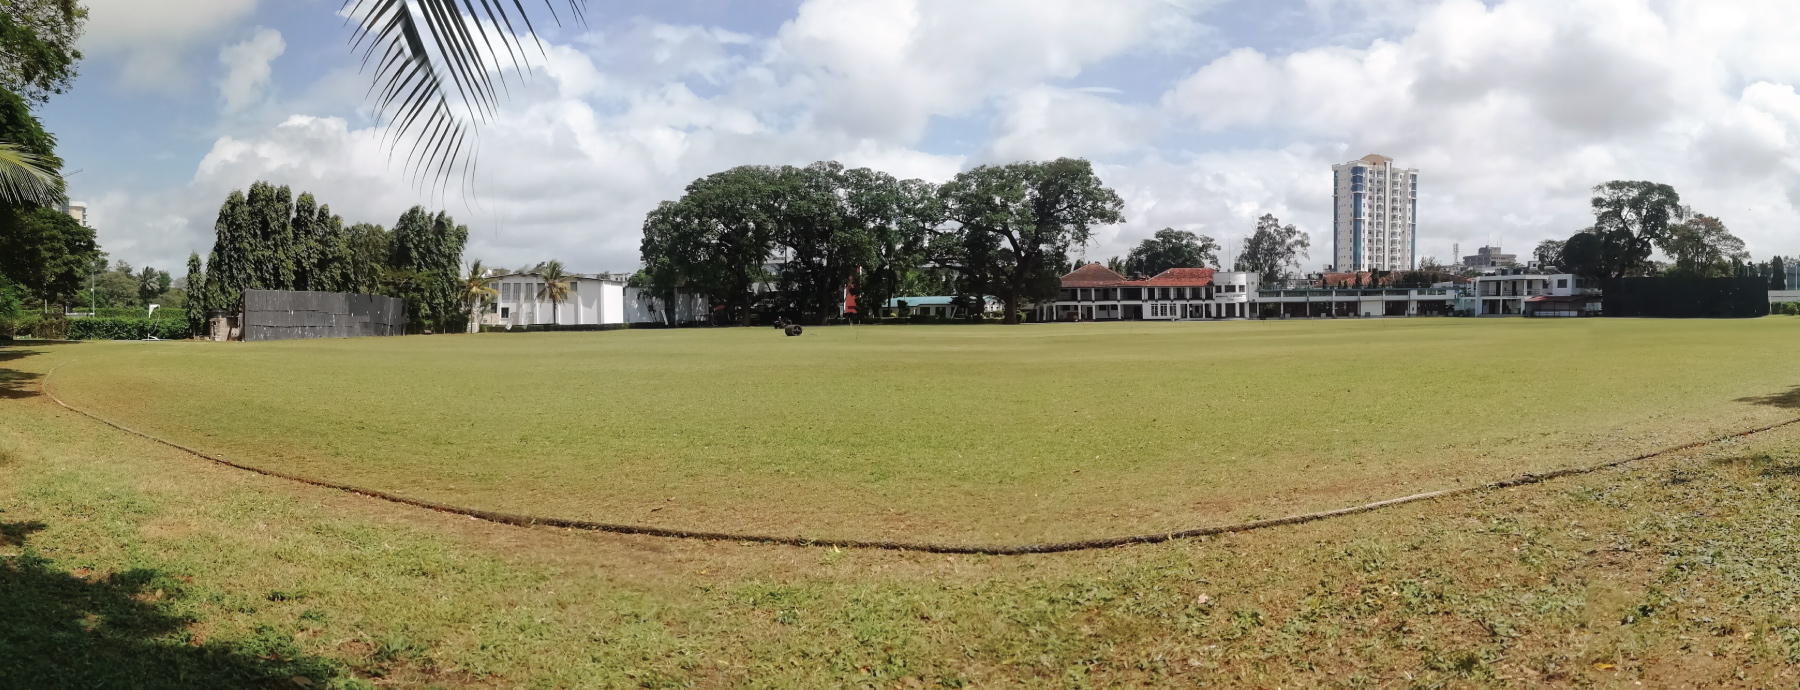 Mombasa Sports Club. ODI standard-Cricket Pitch